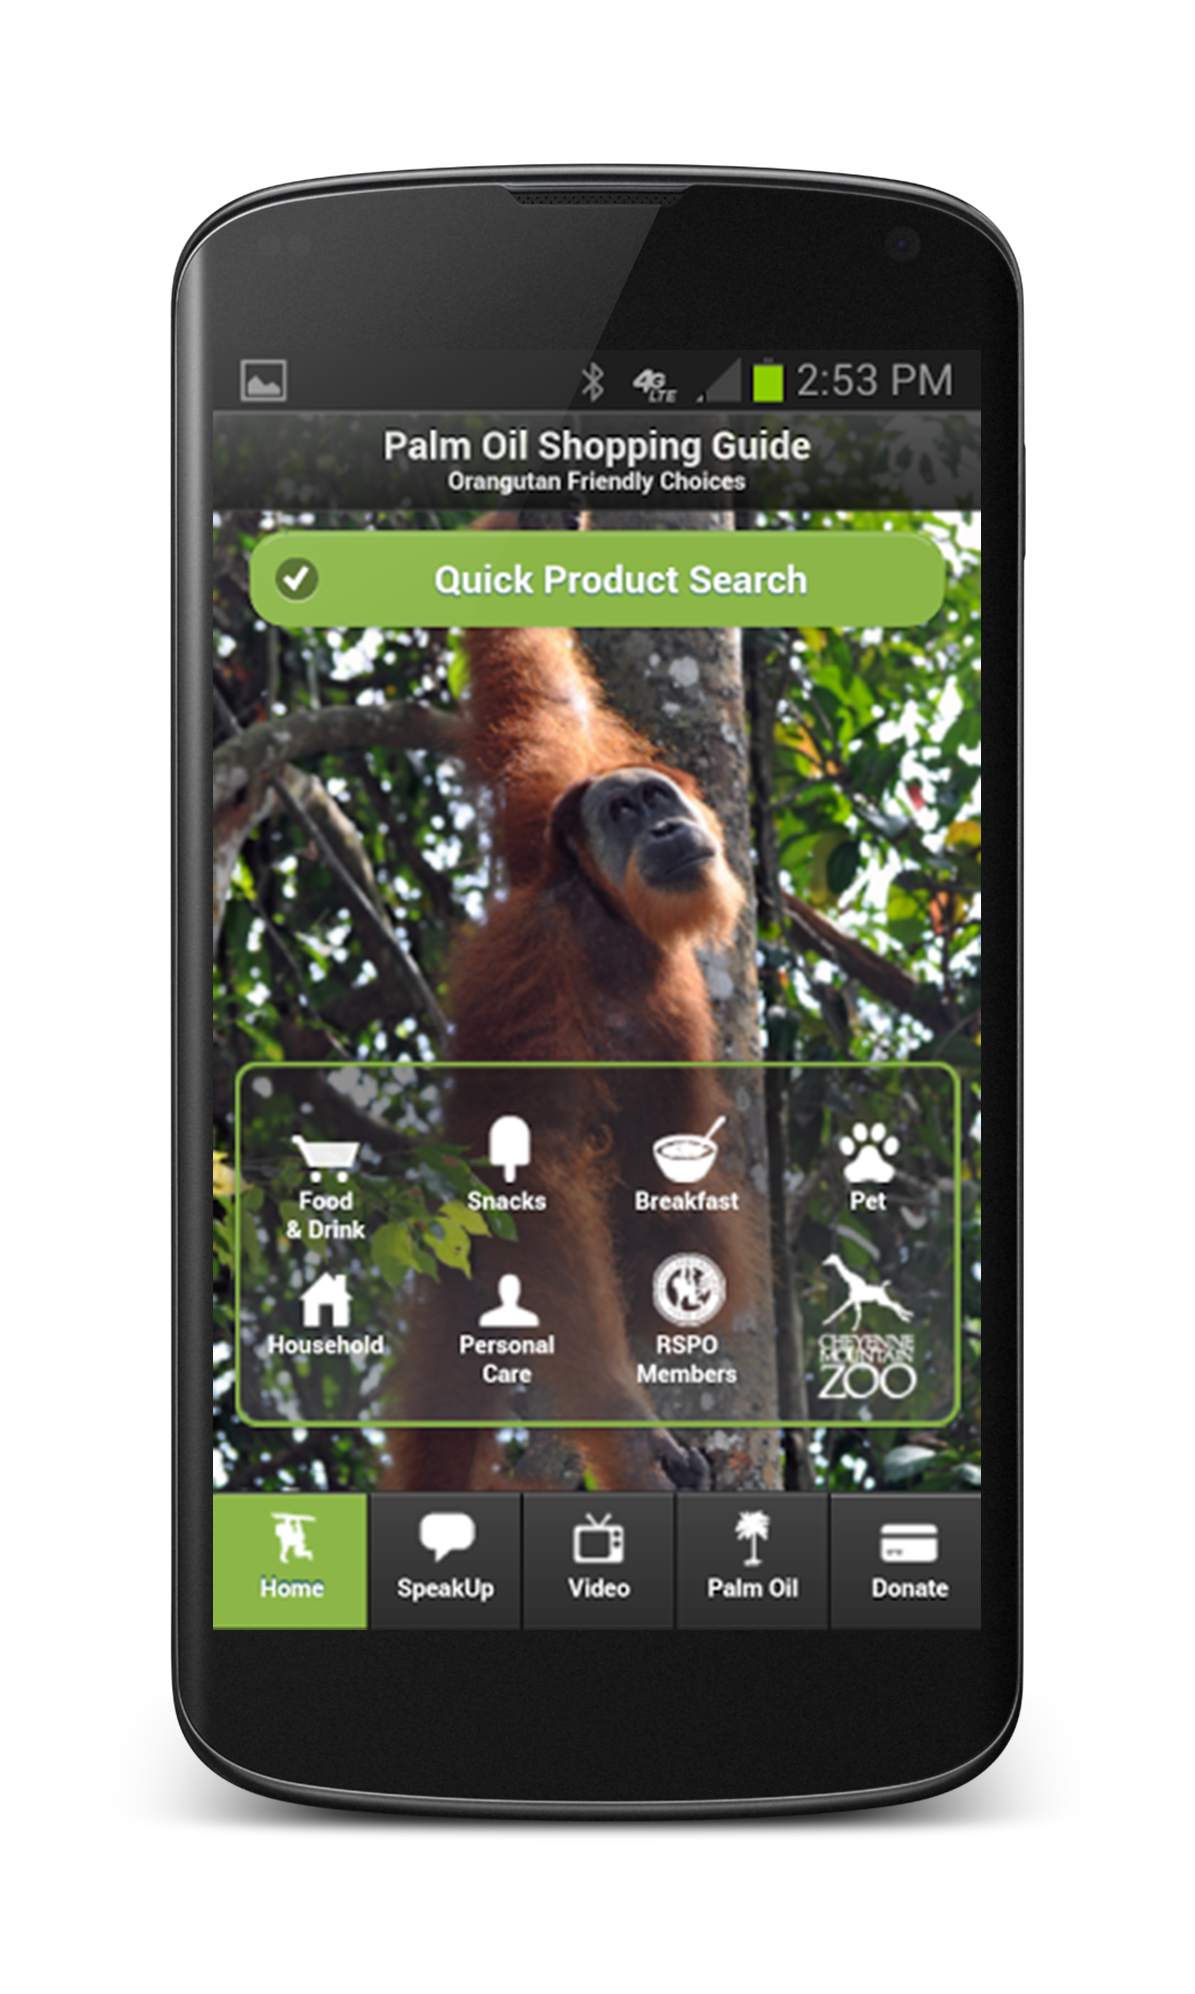 Download the Cheyenne Mountain Zoo's palm oil shopping guide app for Android or Apple.